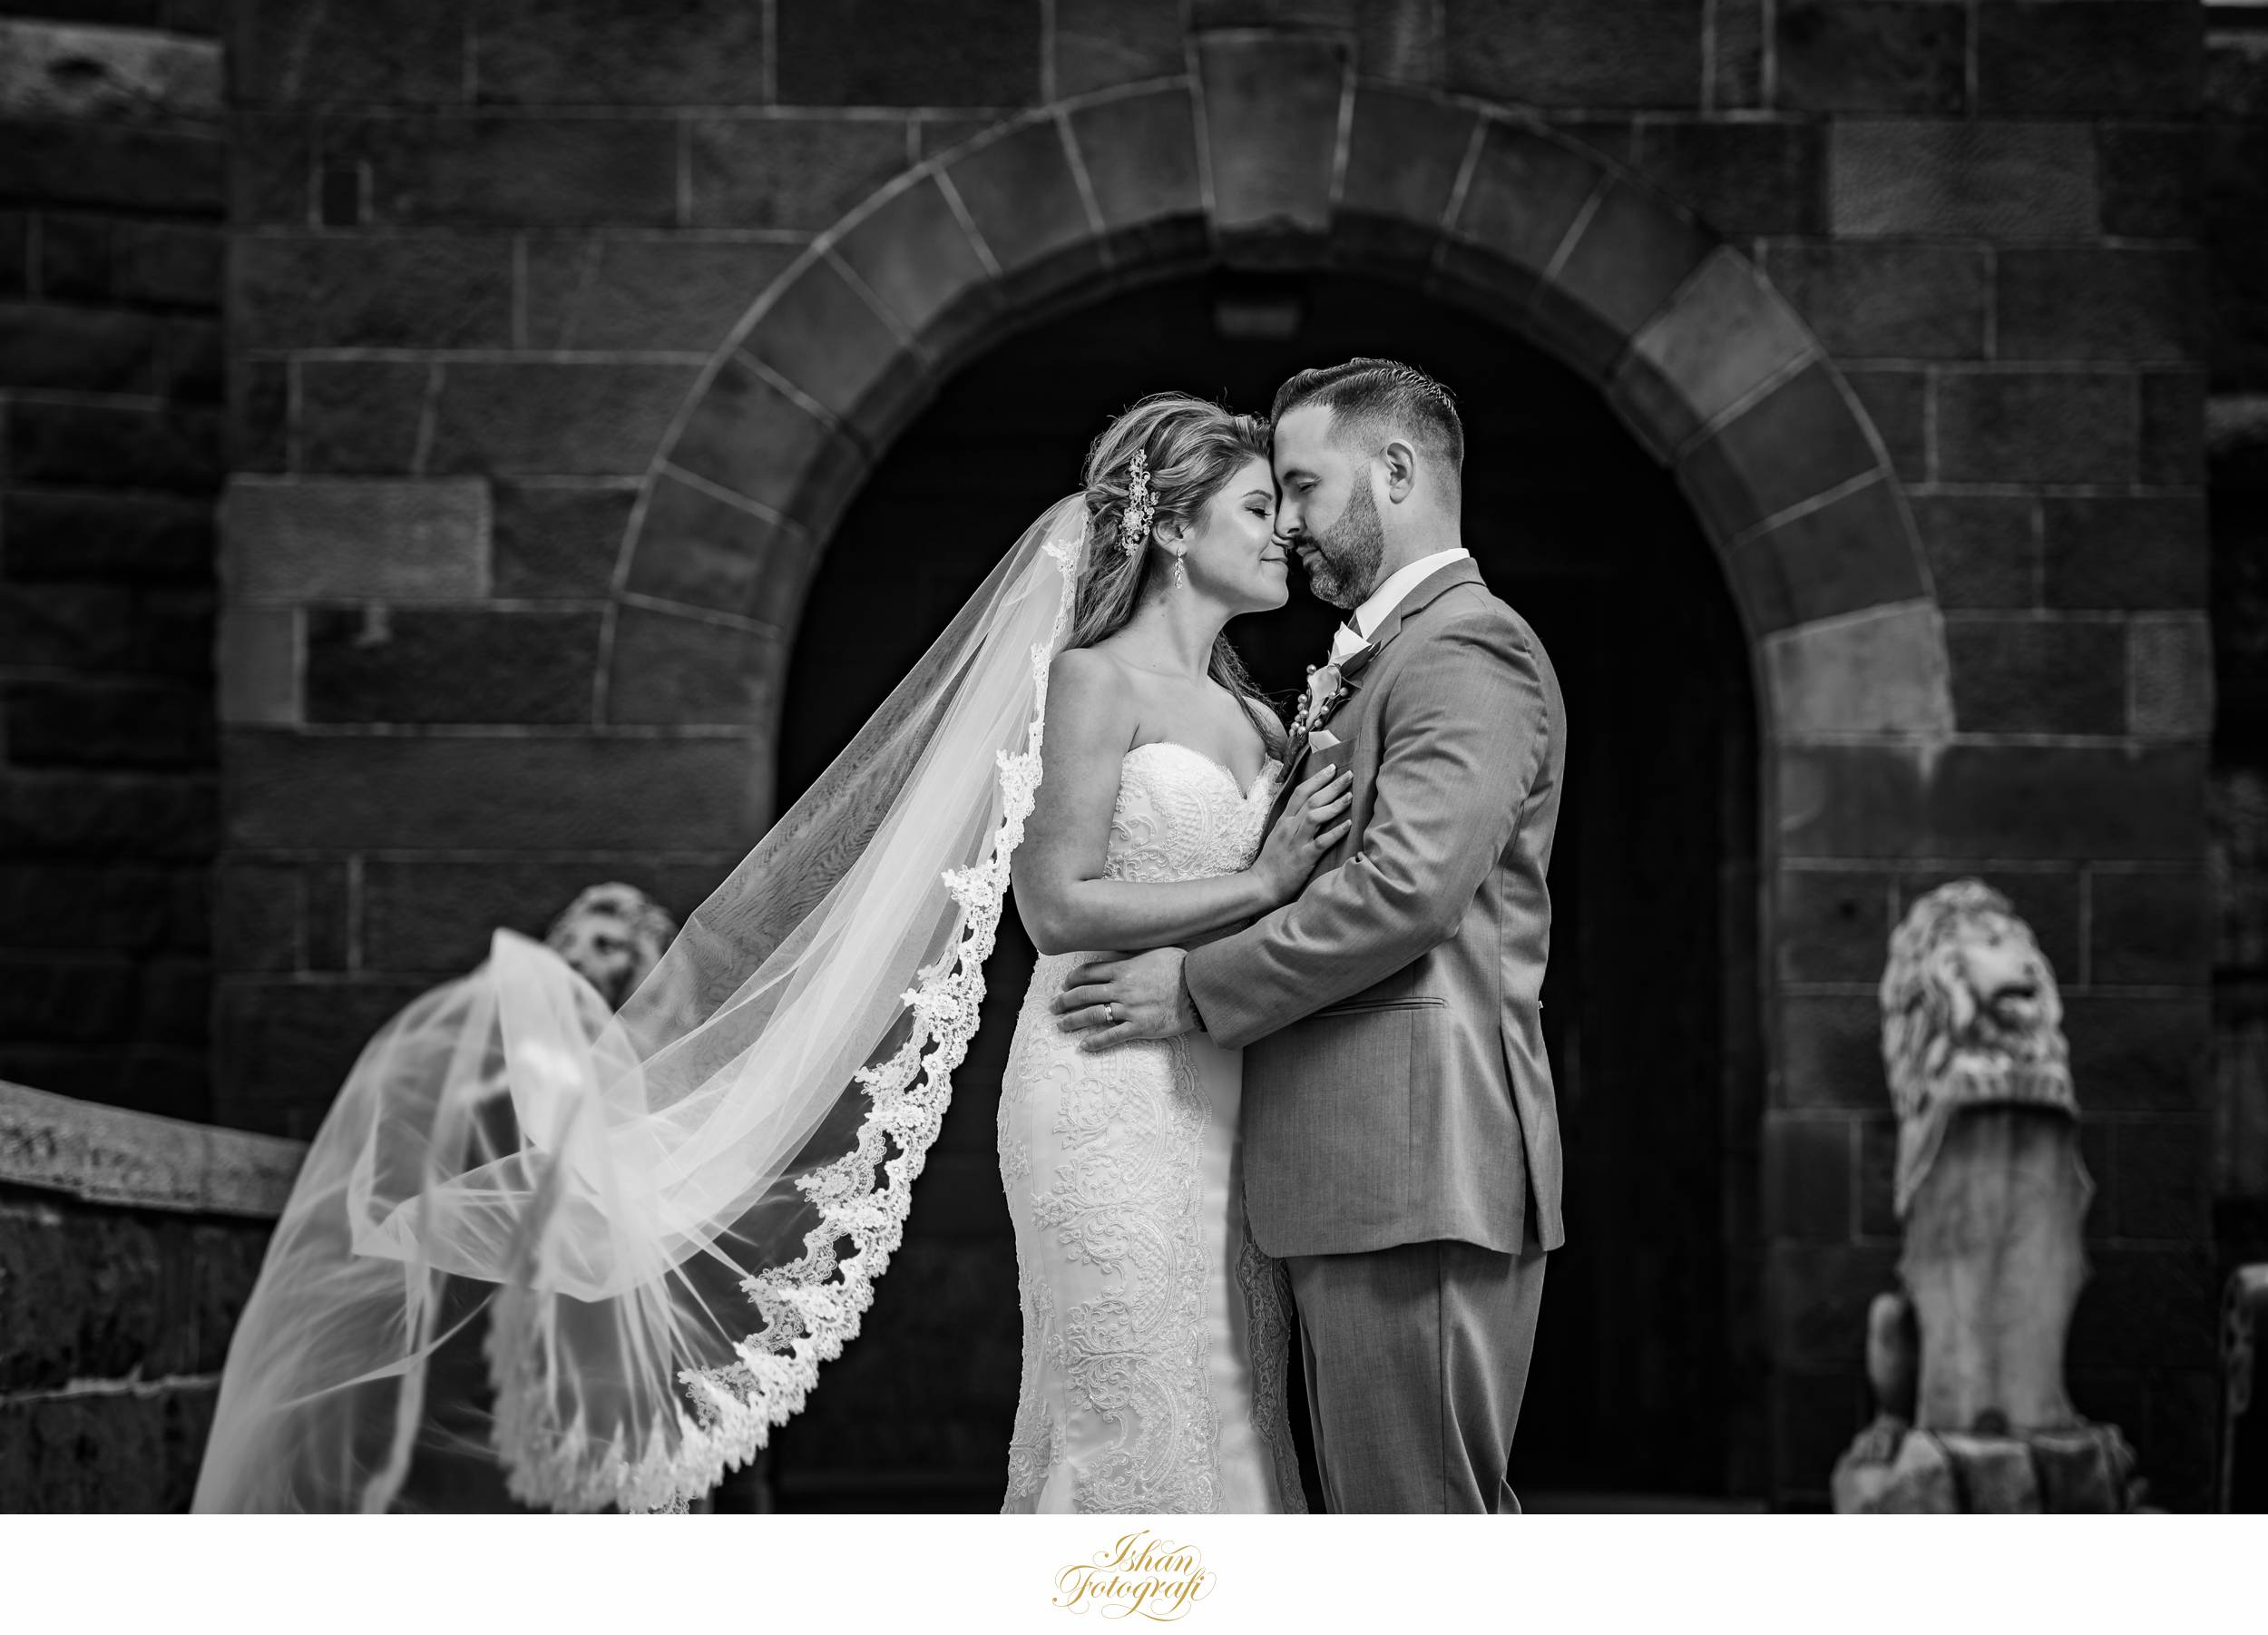 Our bride looked stunning in her gown from  Bridal Reflections . The long veil complimented her gown and she was able to carry her dress flawlessly.